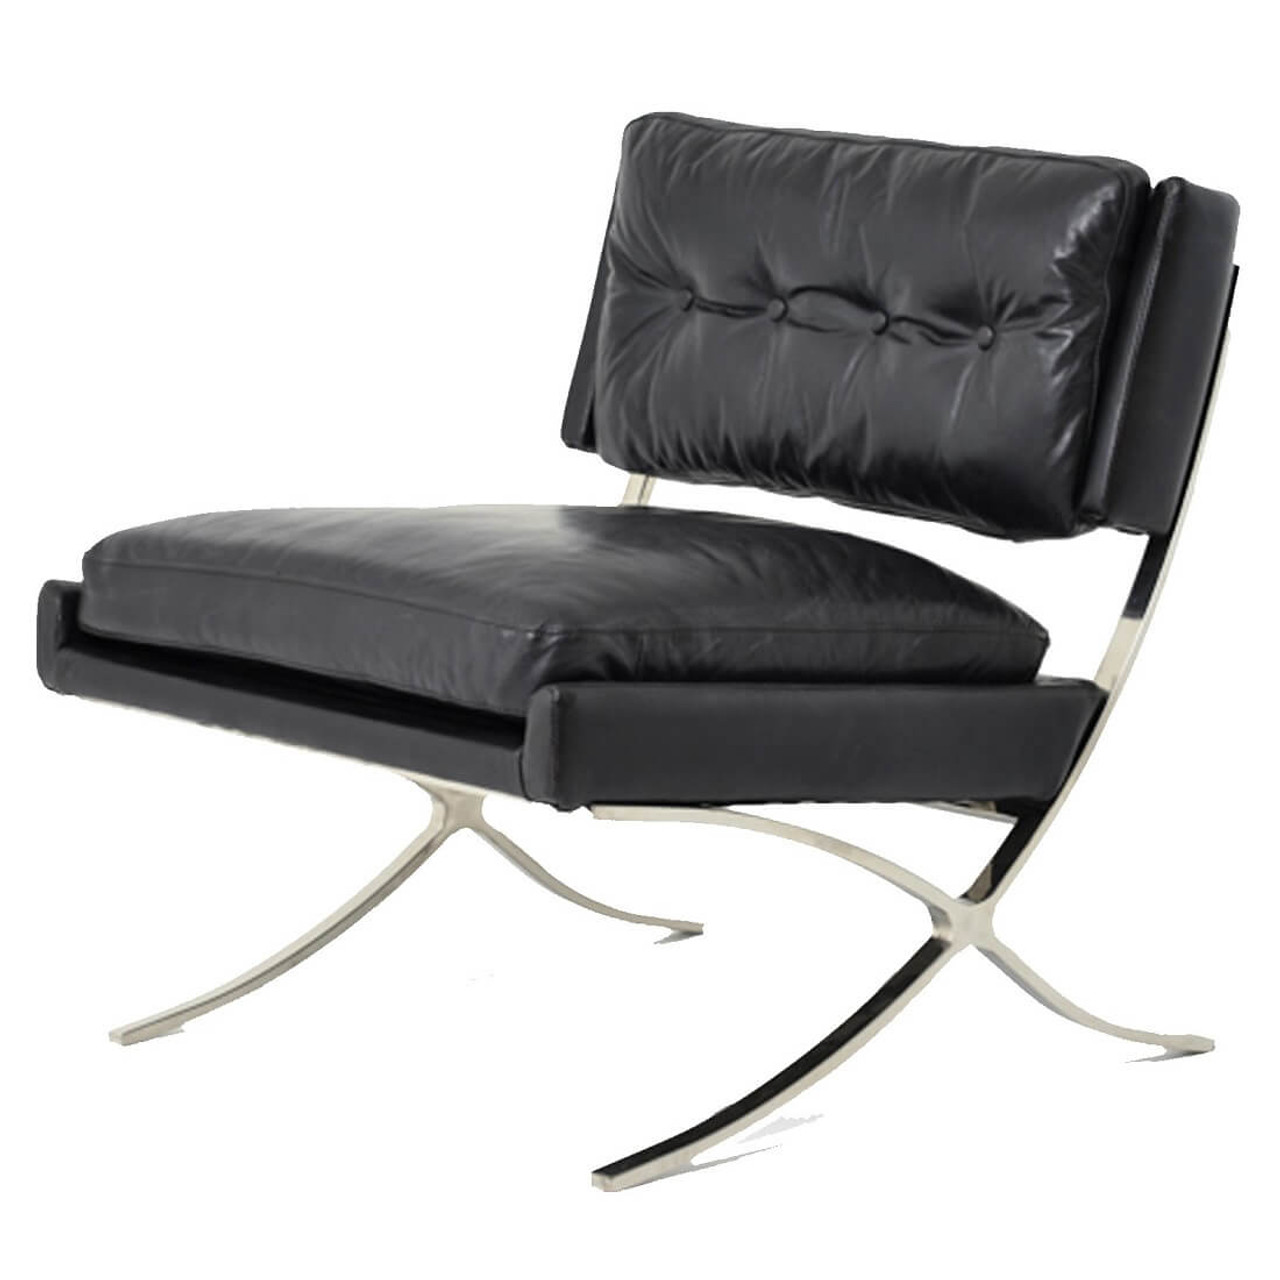 Black Leather Lounge Chair Heathrow Vintage Black Leather Lounge Chair